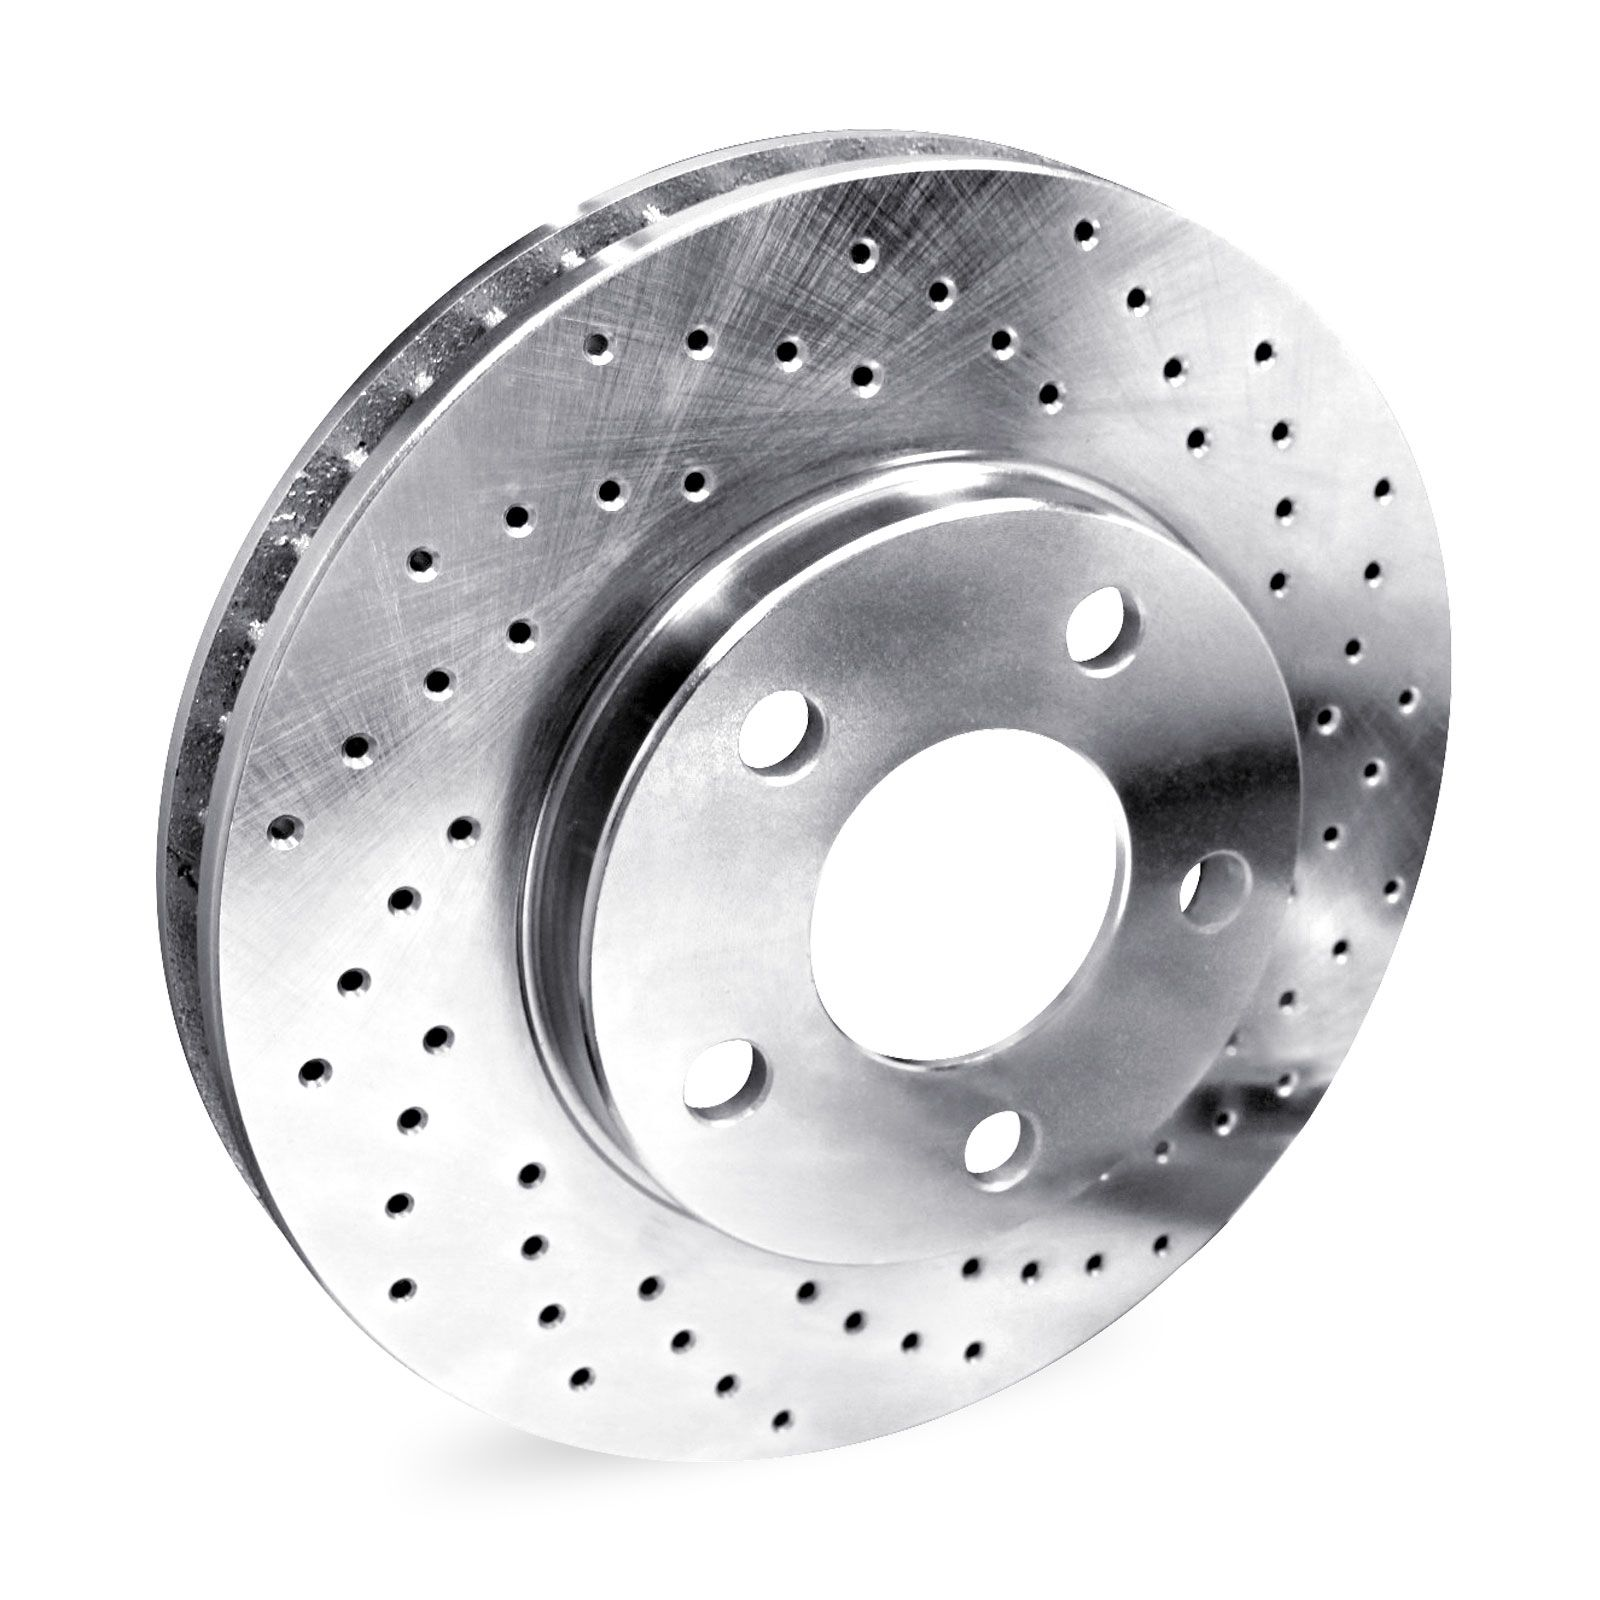 Mercedes benz c300 brake rotors best brake 2017 for Mercedes benz rotors replacement